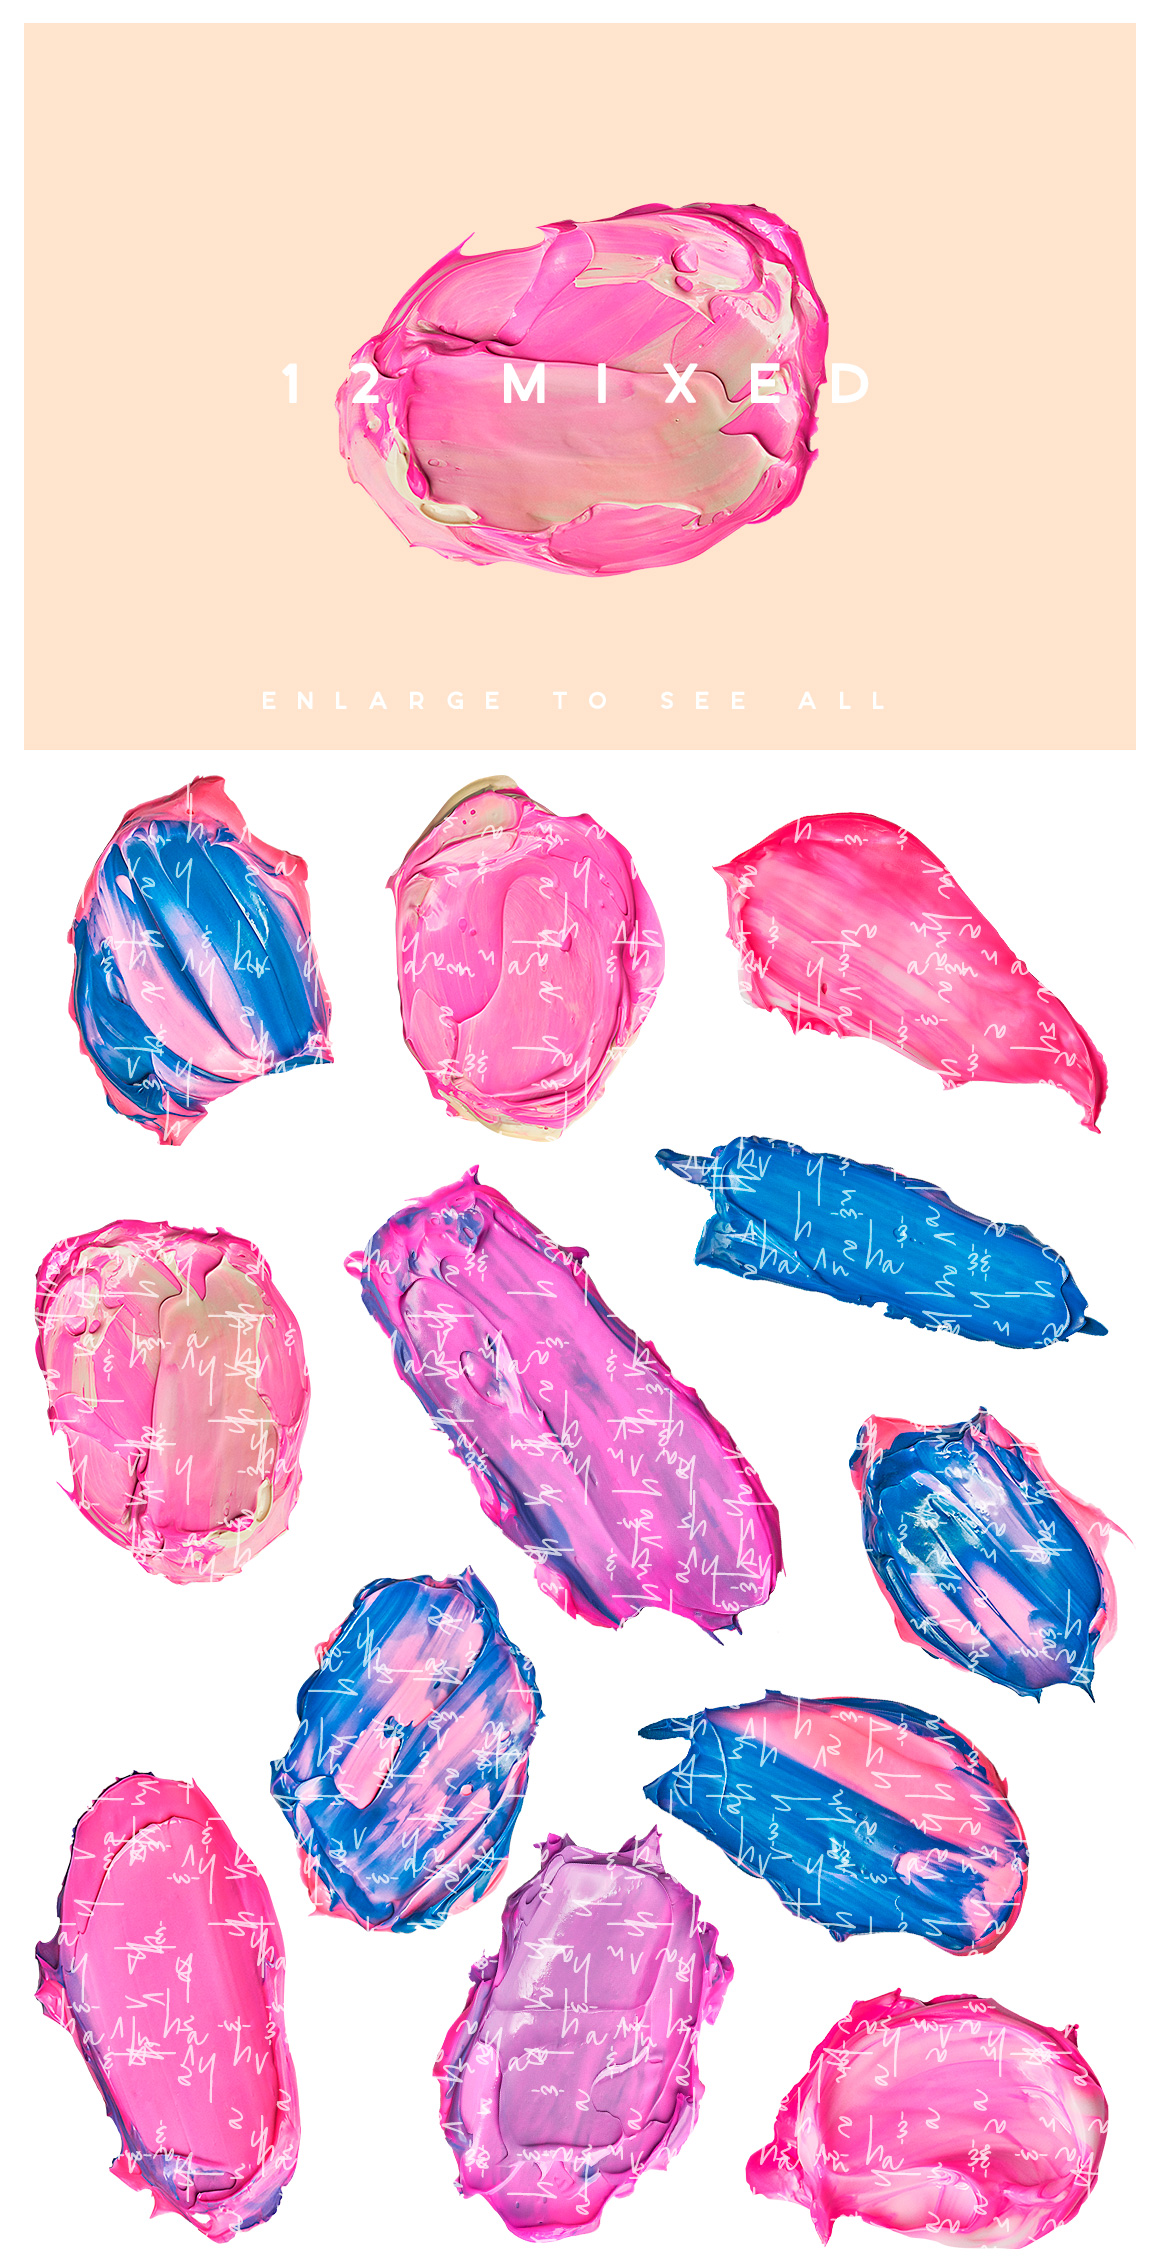 beauty cosmetic swash lipstick acrylic paint stroke acrylic jelly slime gum ana yvy